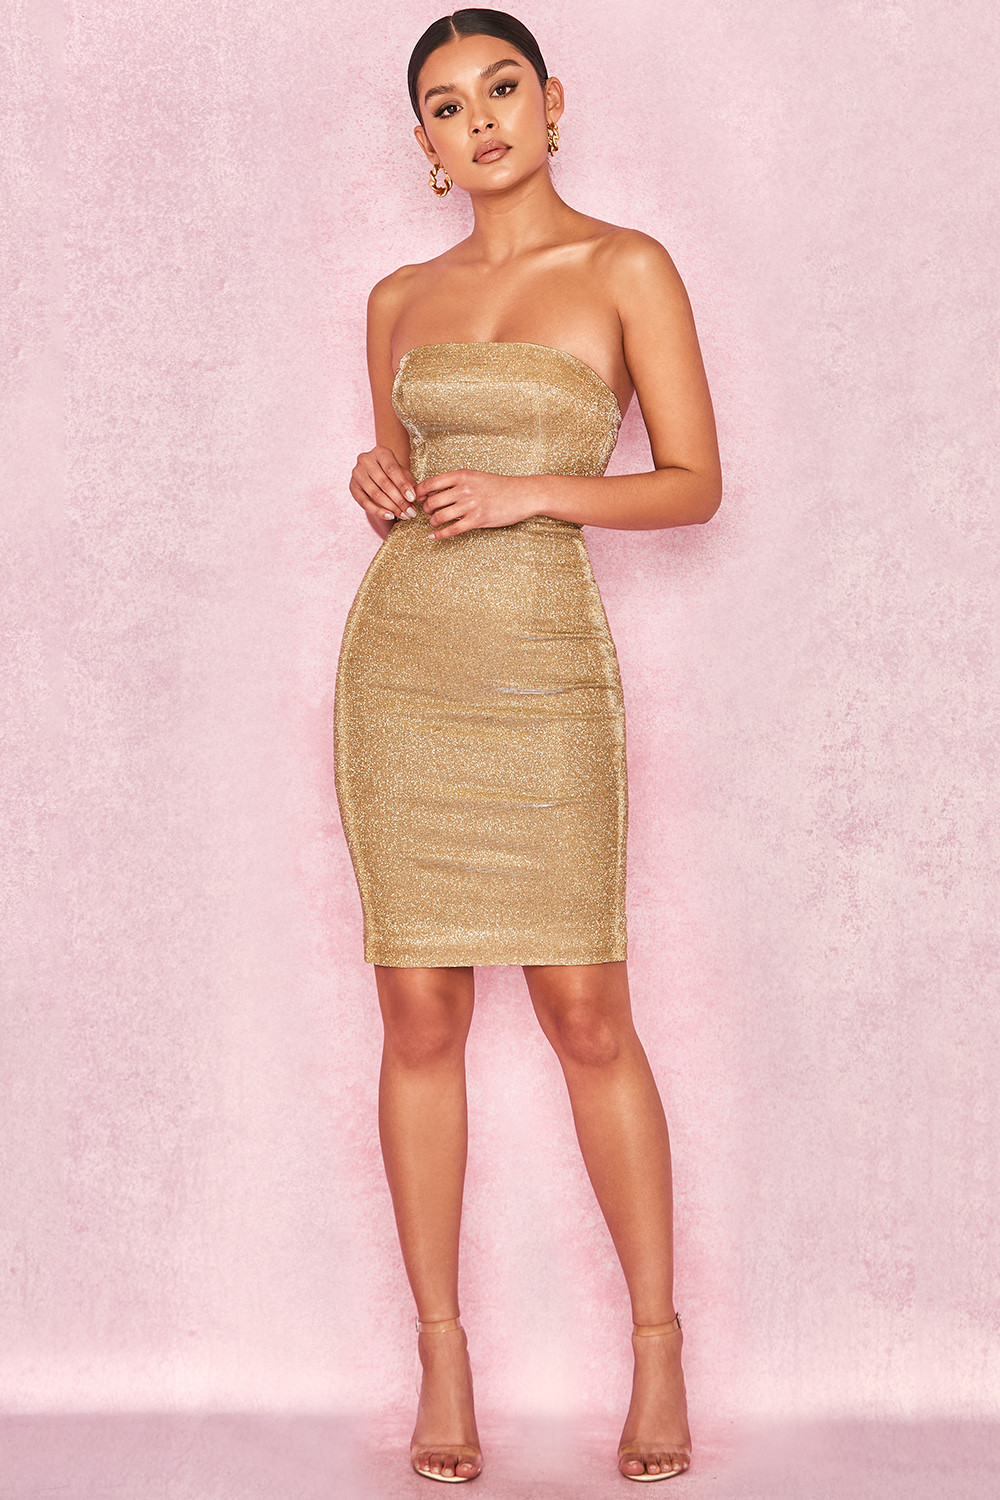 36a9dd9ed384 Rinah Iridescent Gold Strapless Mini Dress. View larger image. View larger  image